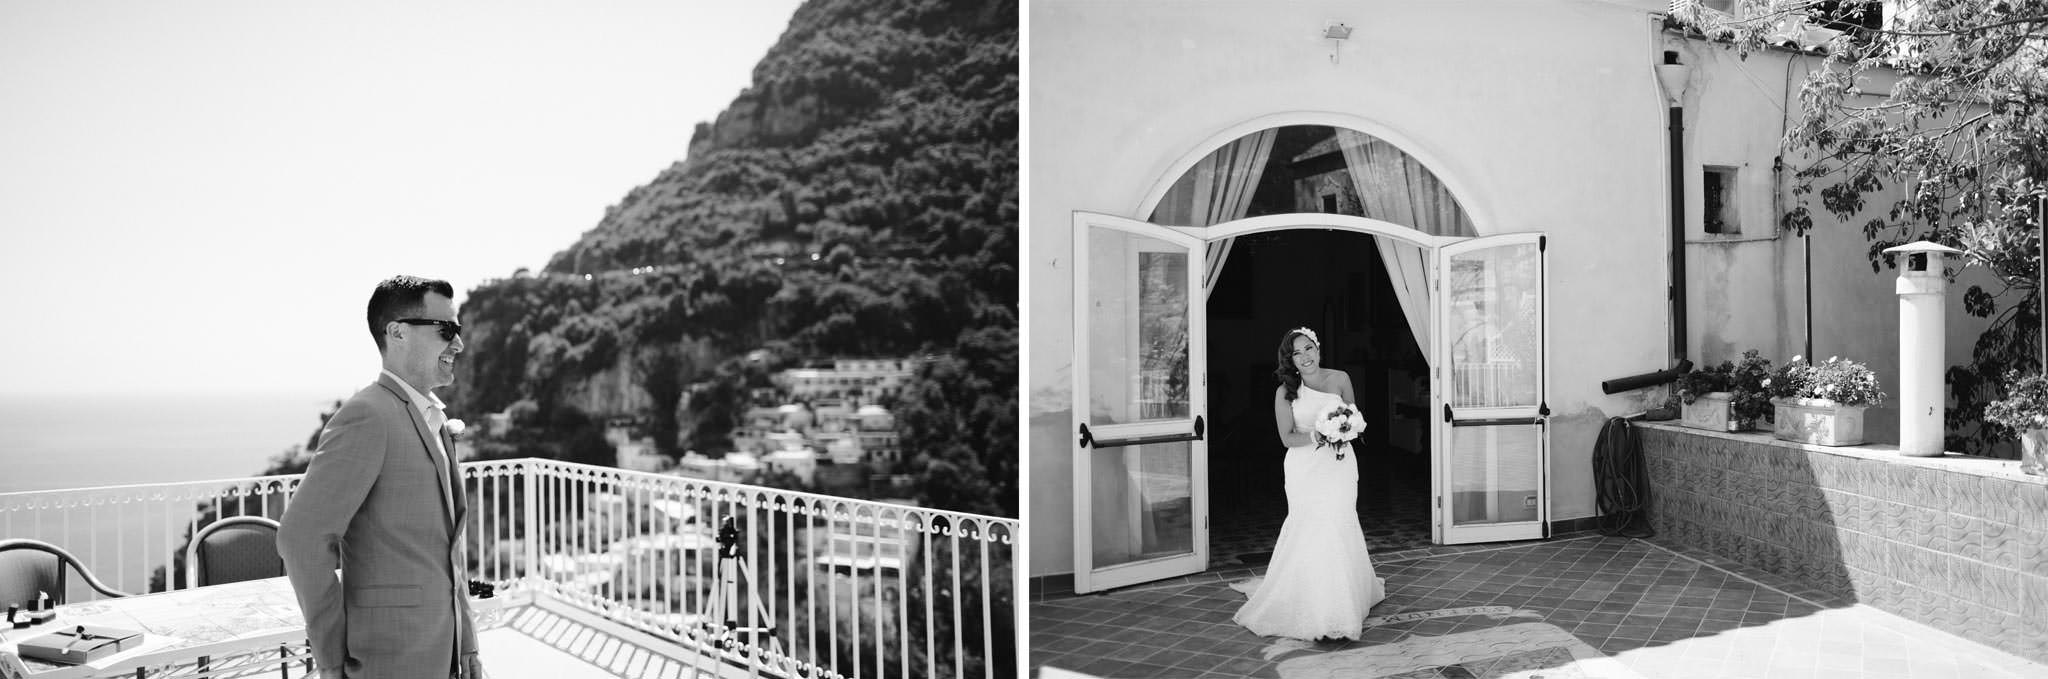 positano-wedding-photographer-034